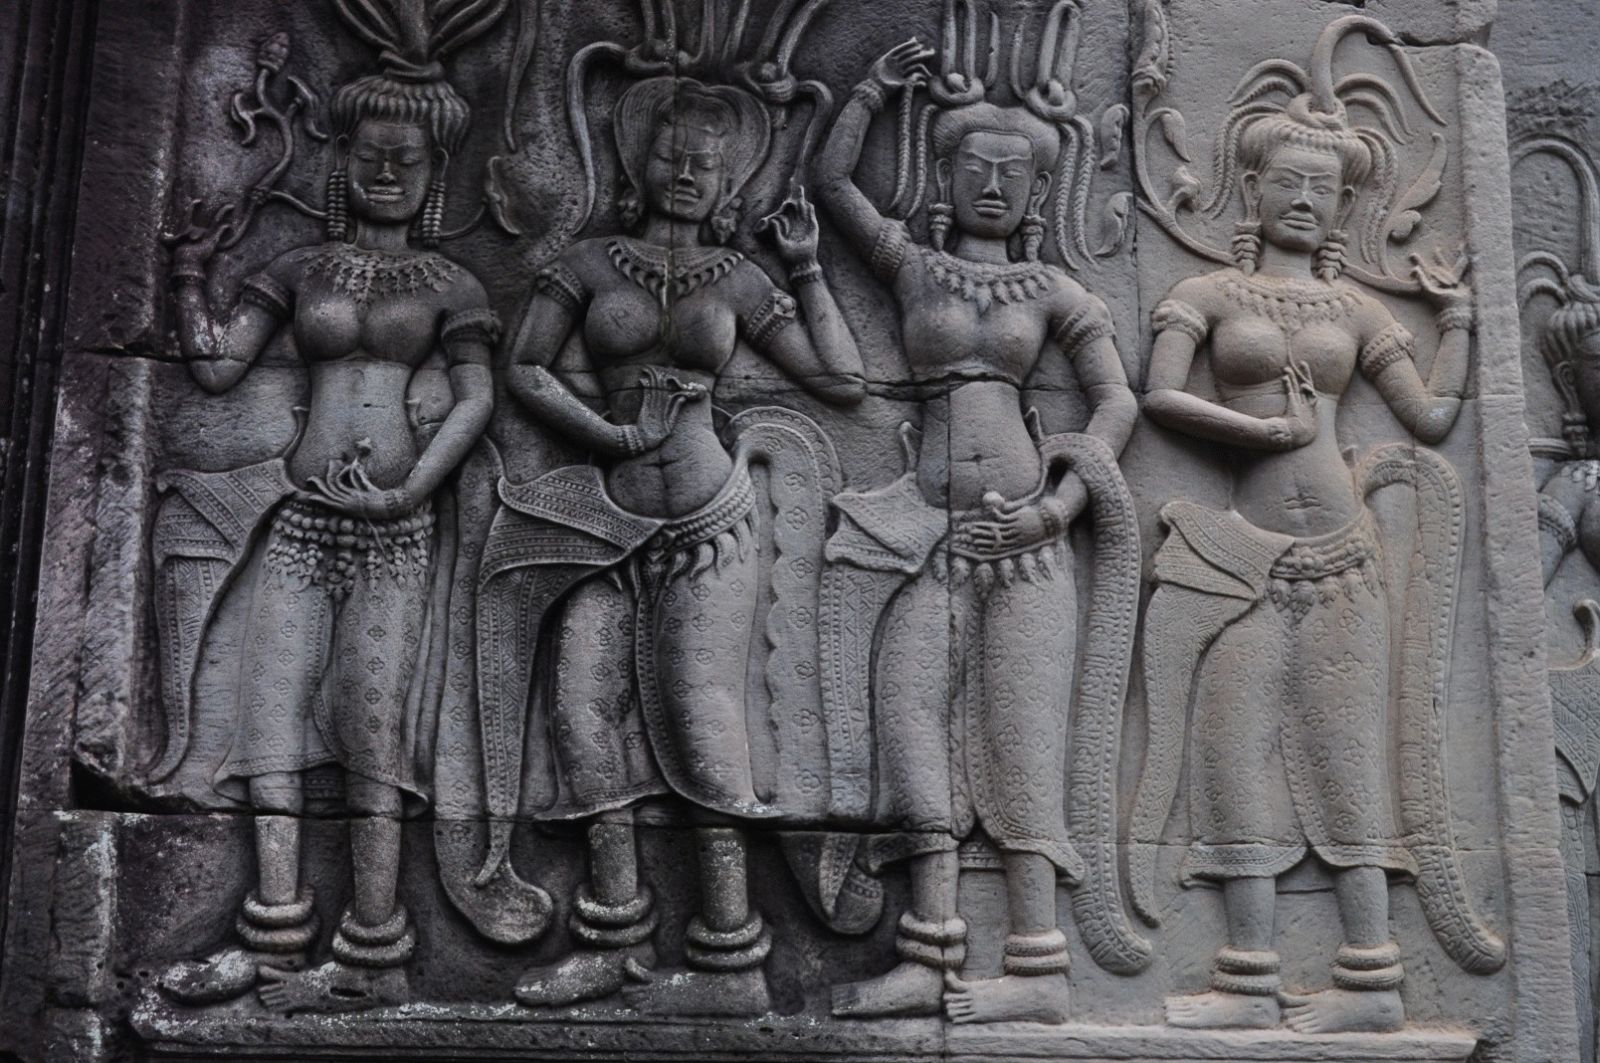 Reliefs of Apsara dancers in the second structure in Angkor Wat